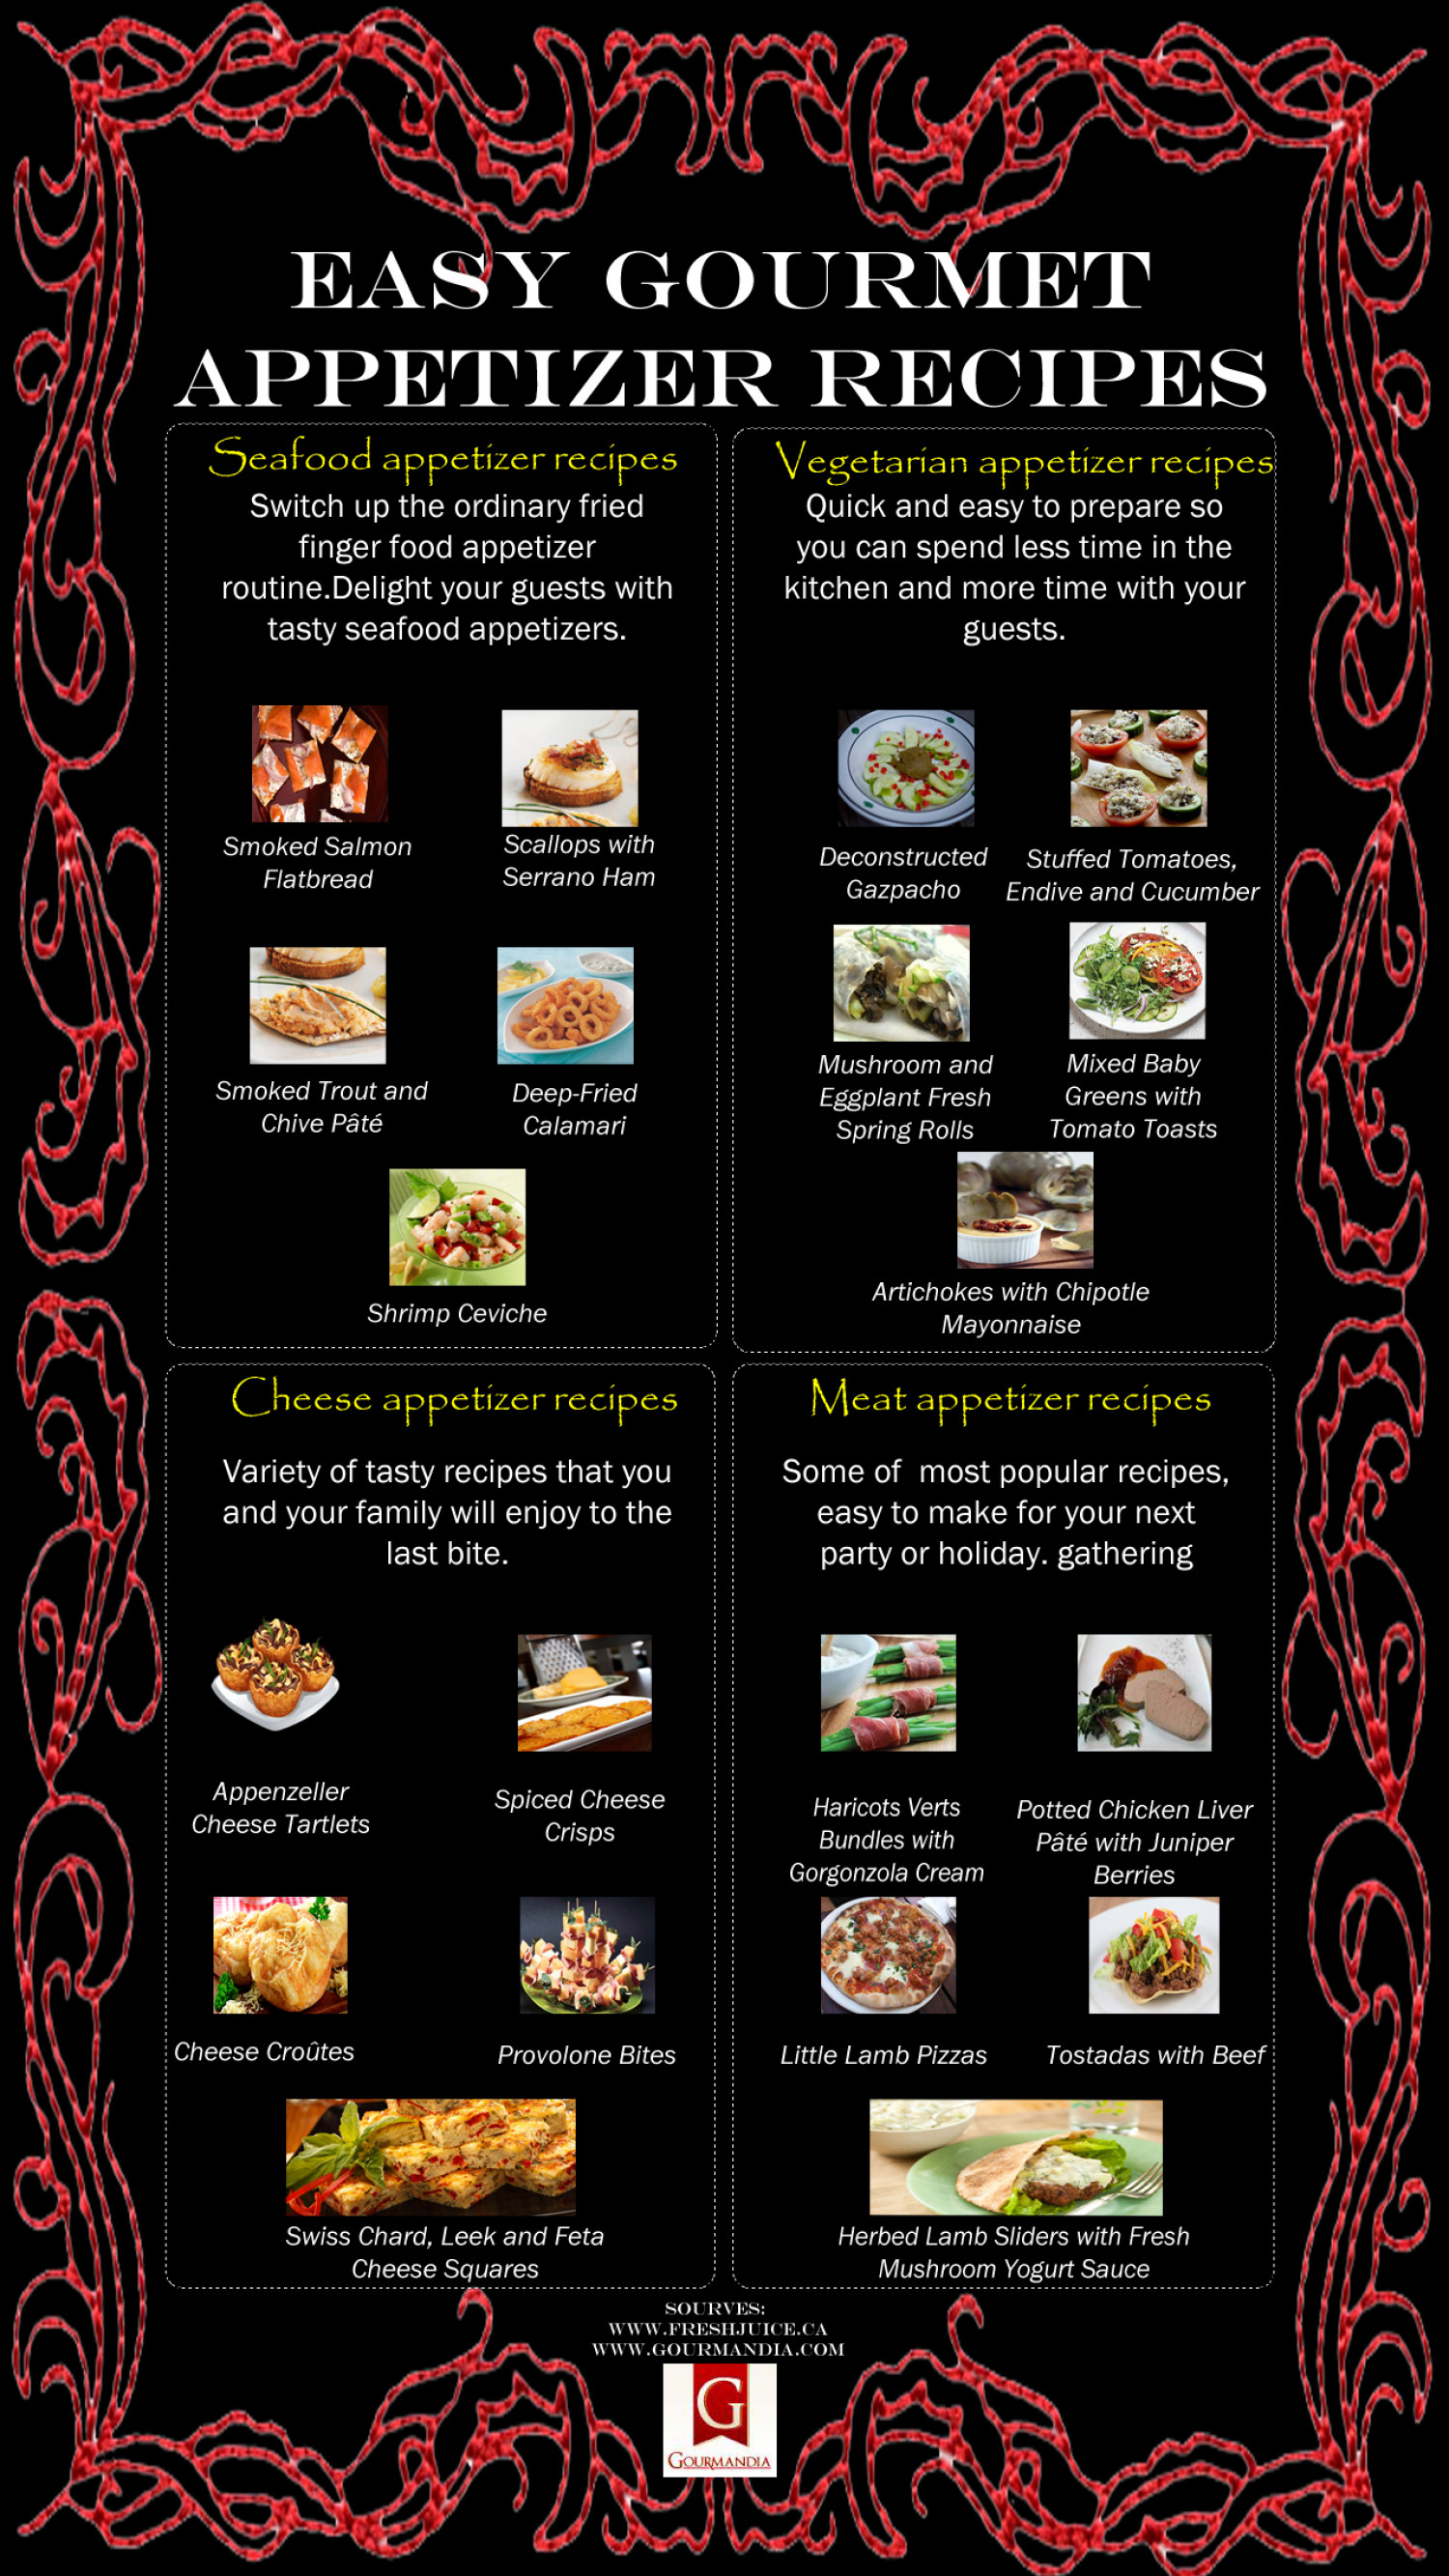 Easy Gourmet Appetizer Recipes Infographic